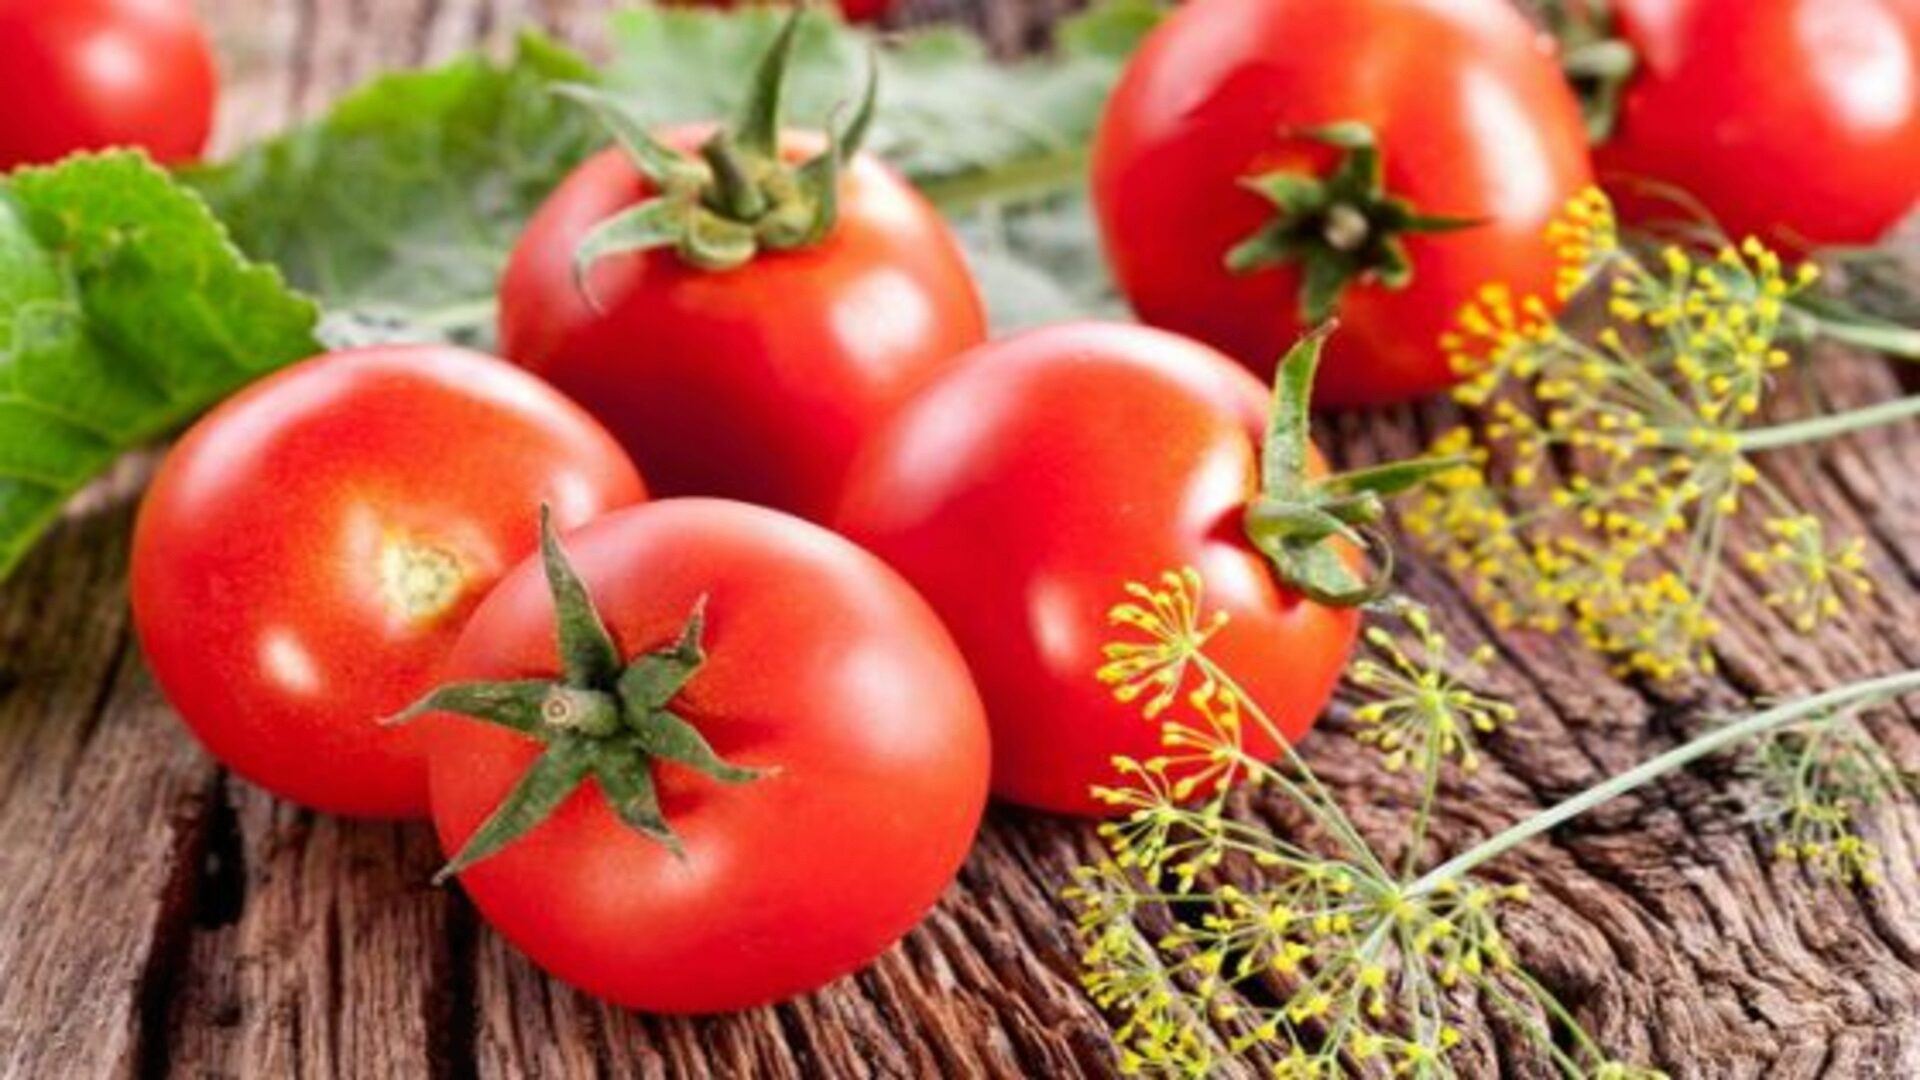 Tomatoes are good in fresh and in the blanks